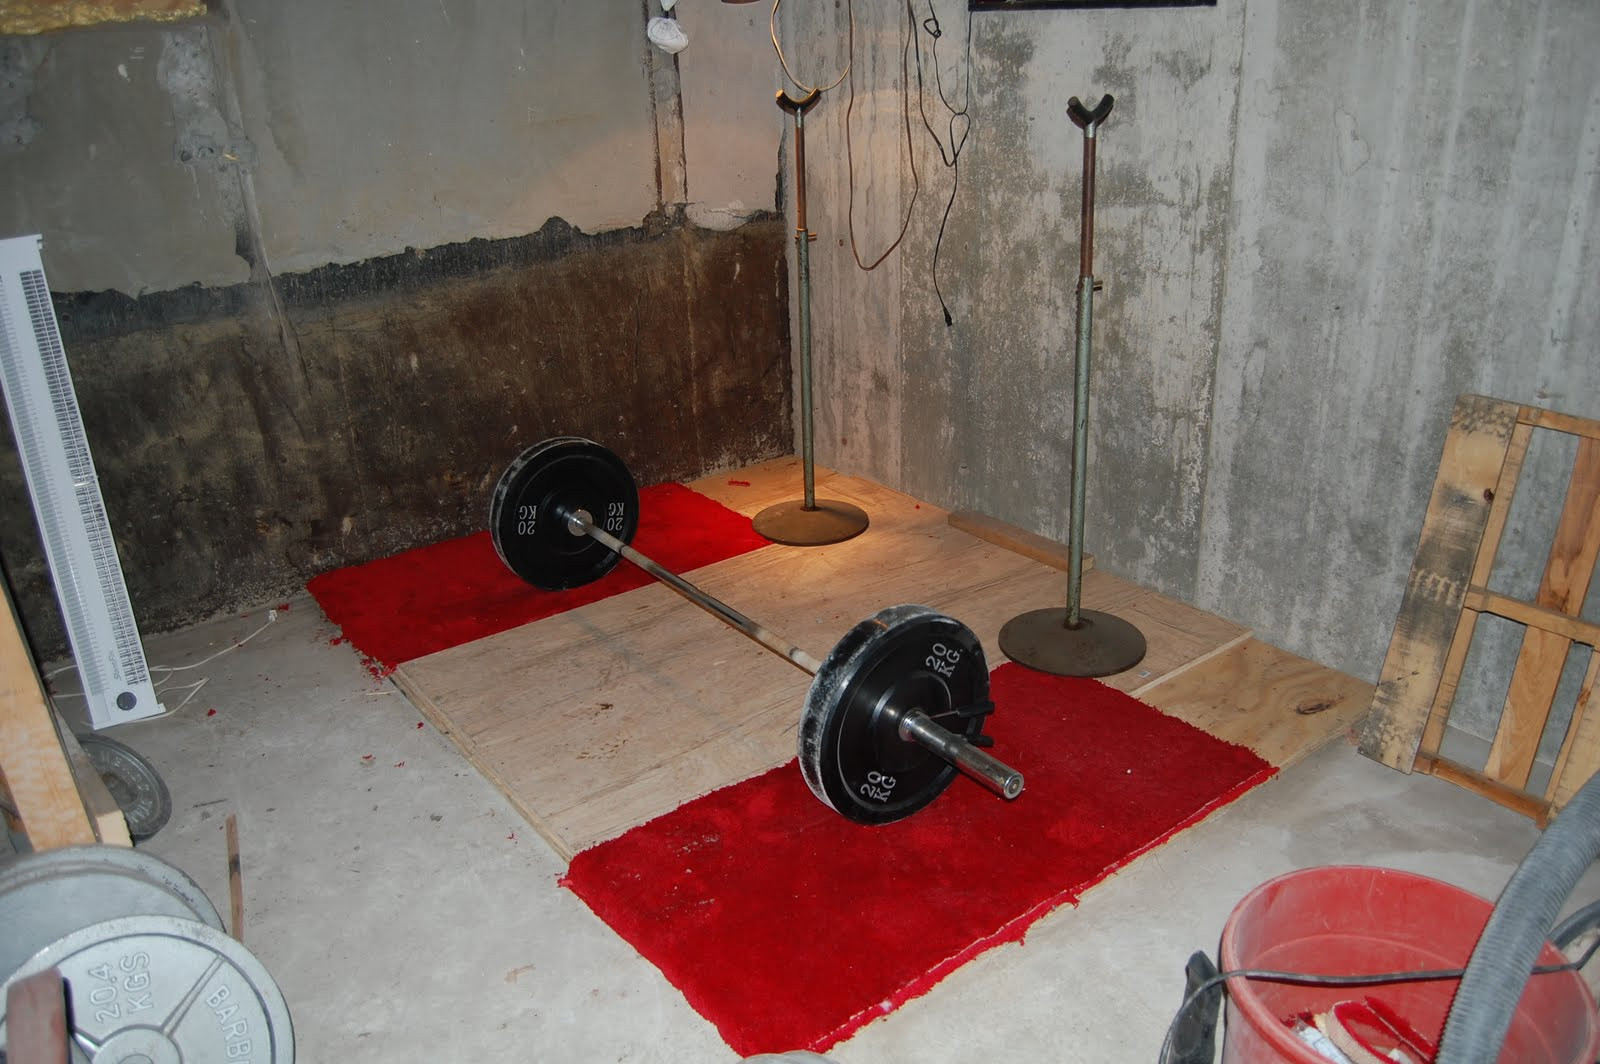 Best ideas about DIY Lifting Platform . Save or Pin Jonathan s Training Log DIY Building a Weightlifting Now.